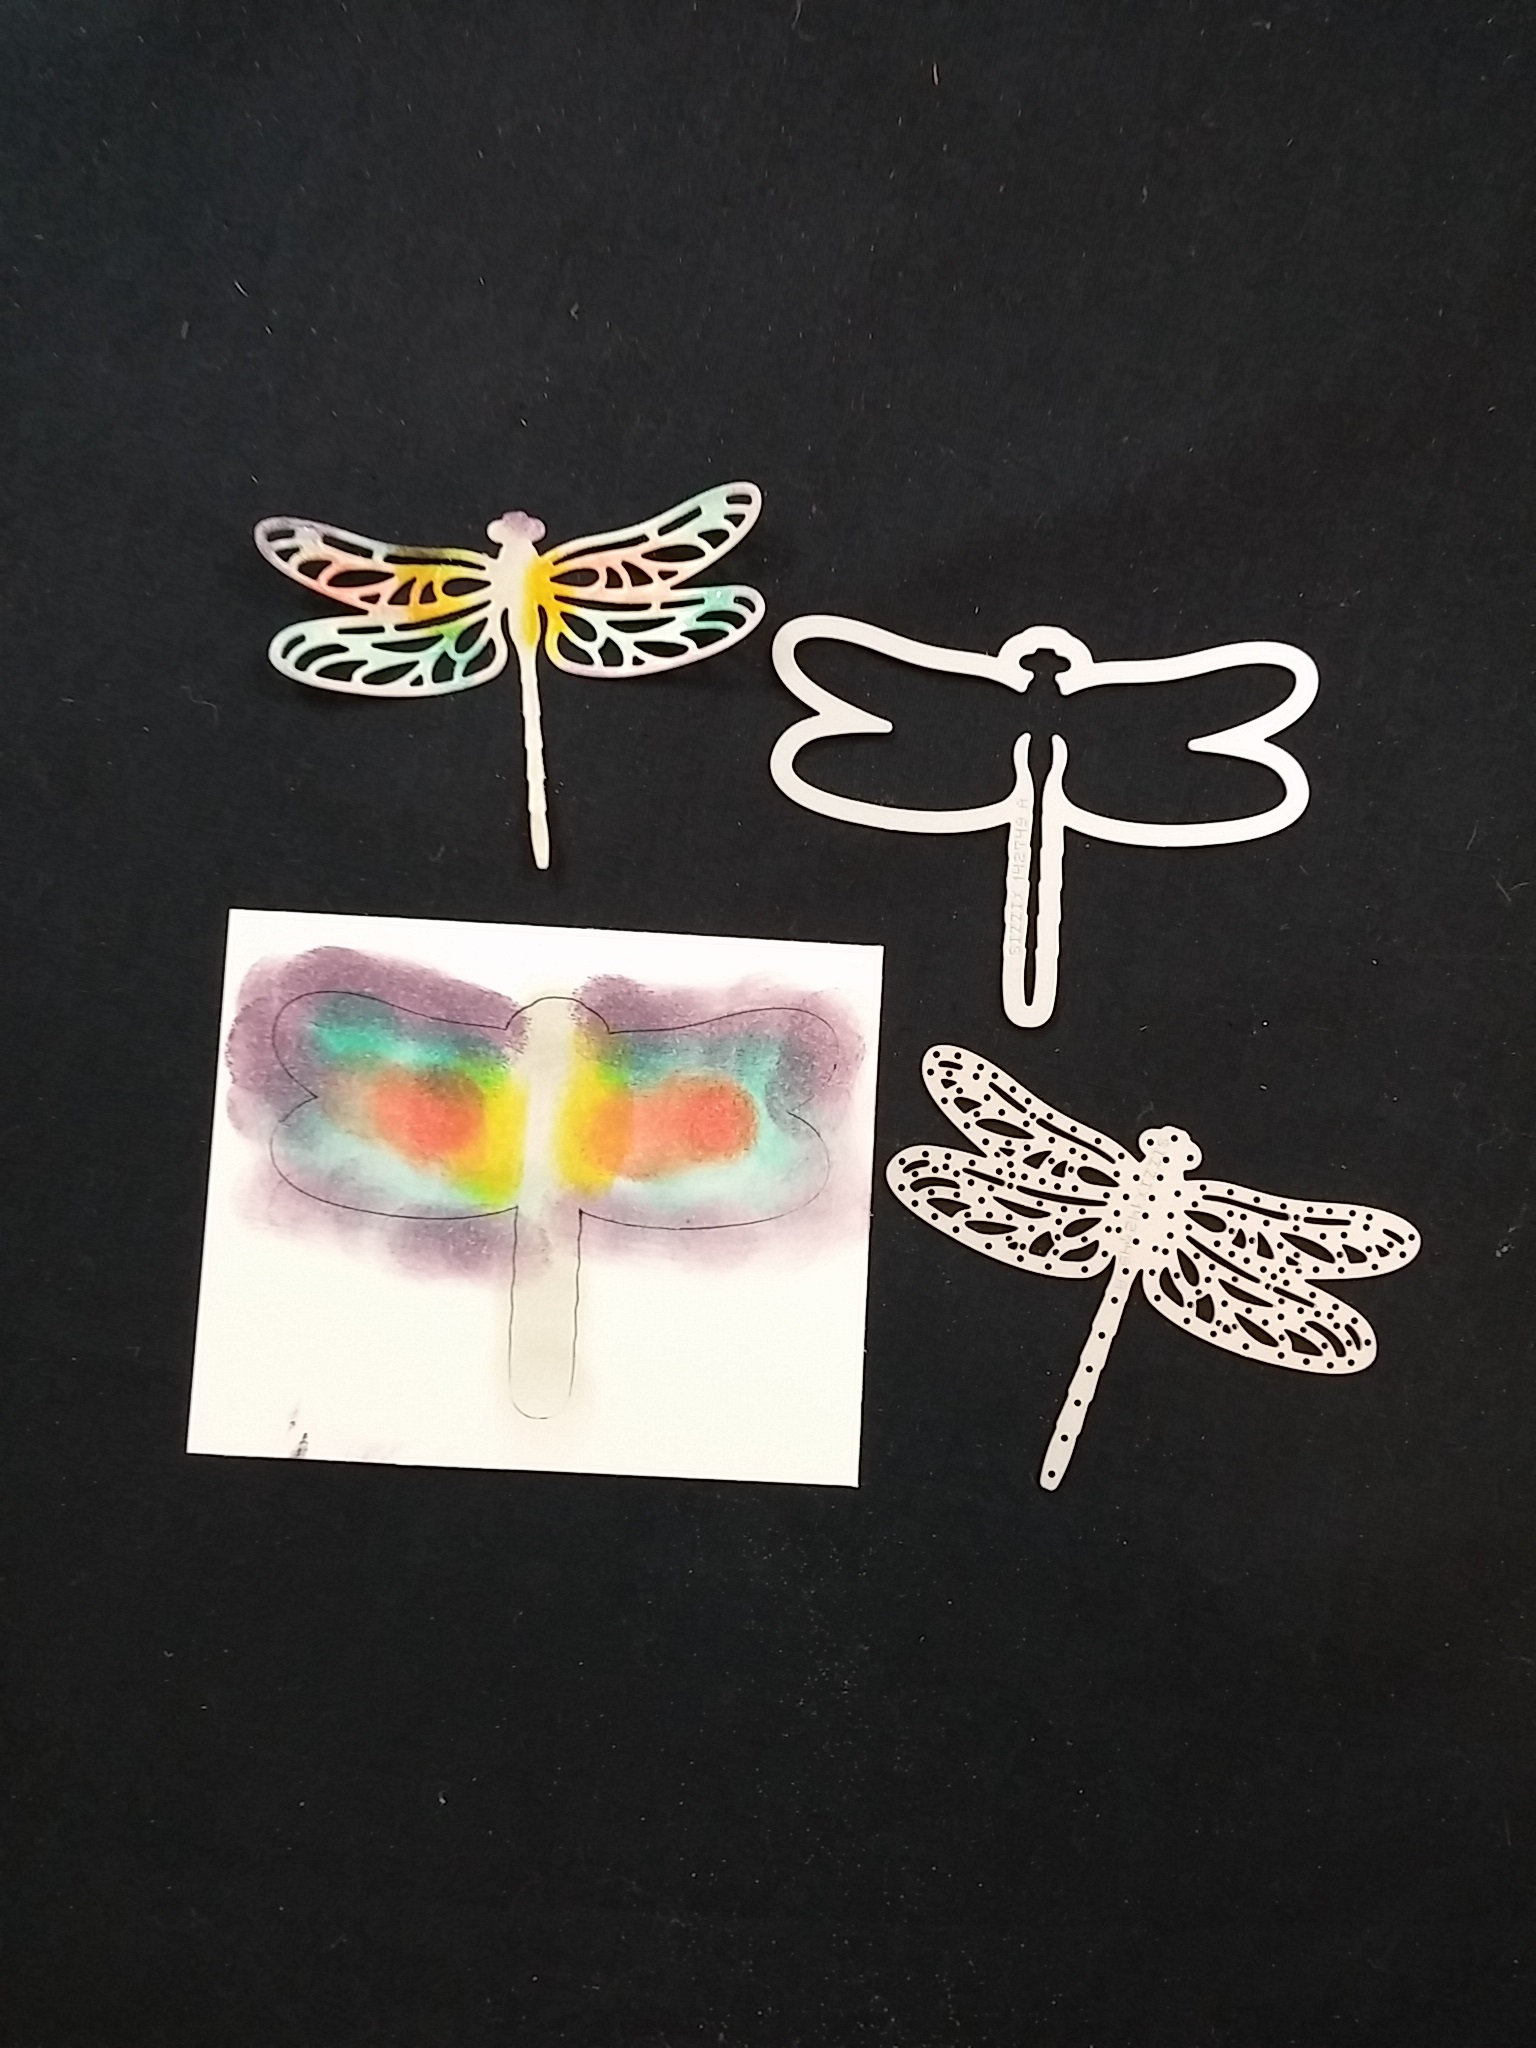 Double Embossing Technique Using Dragonfly Dreams Thinlits